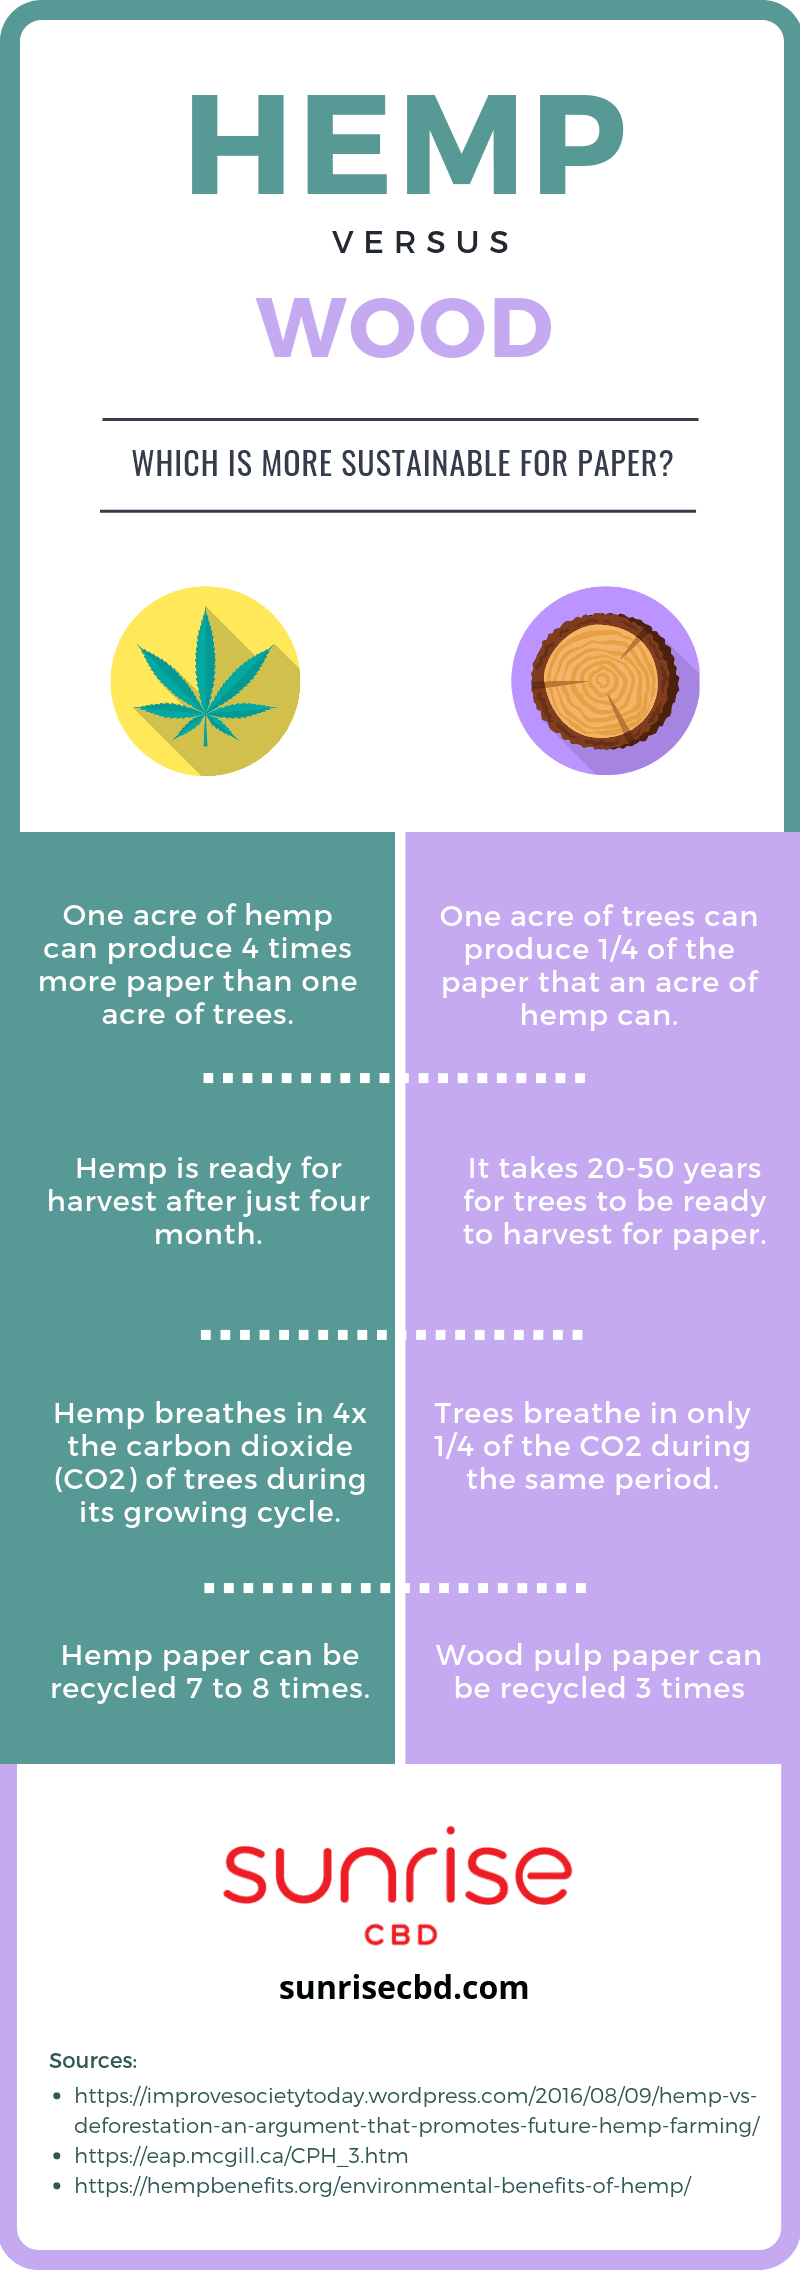 Hemp v. wood sustainability infographic